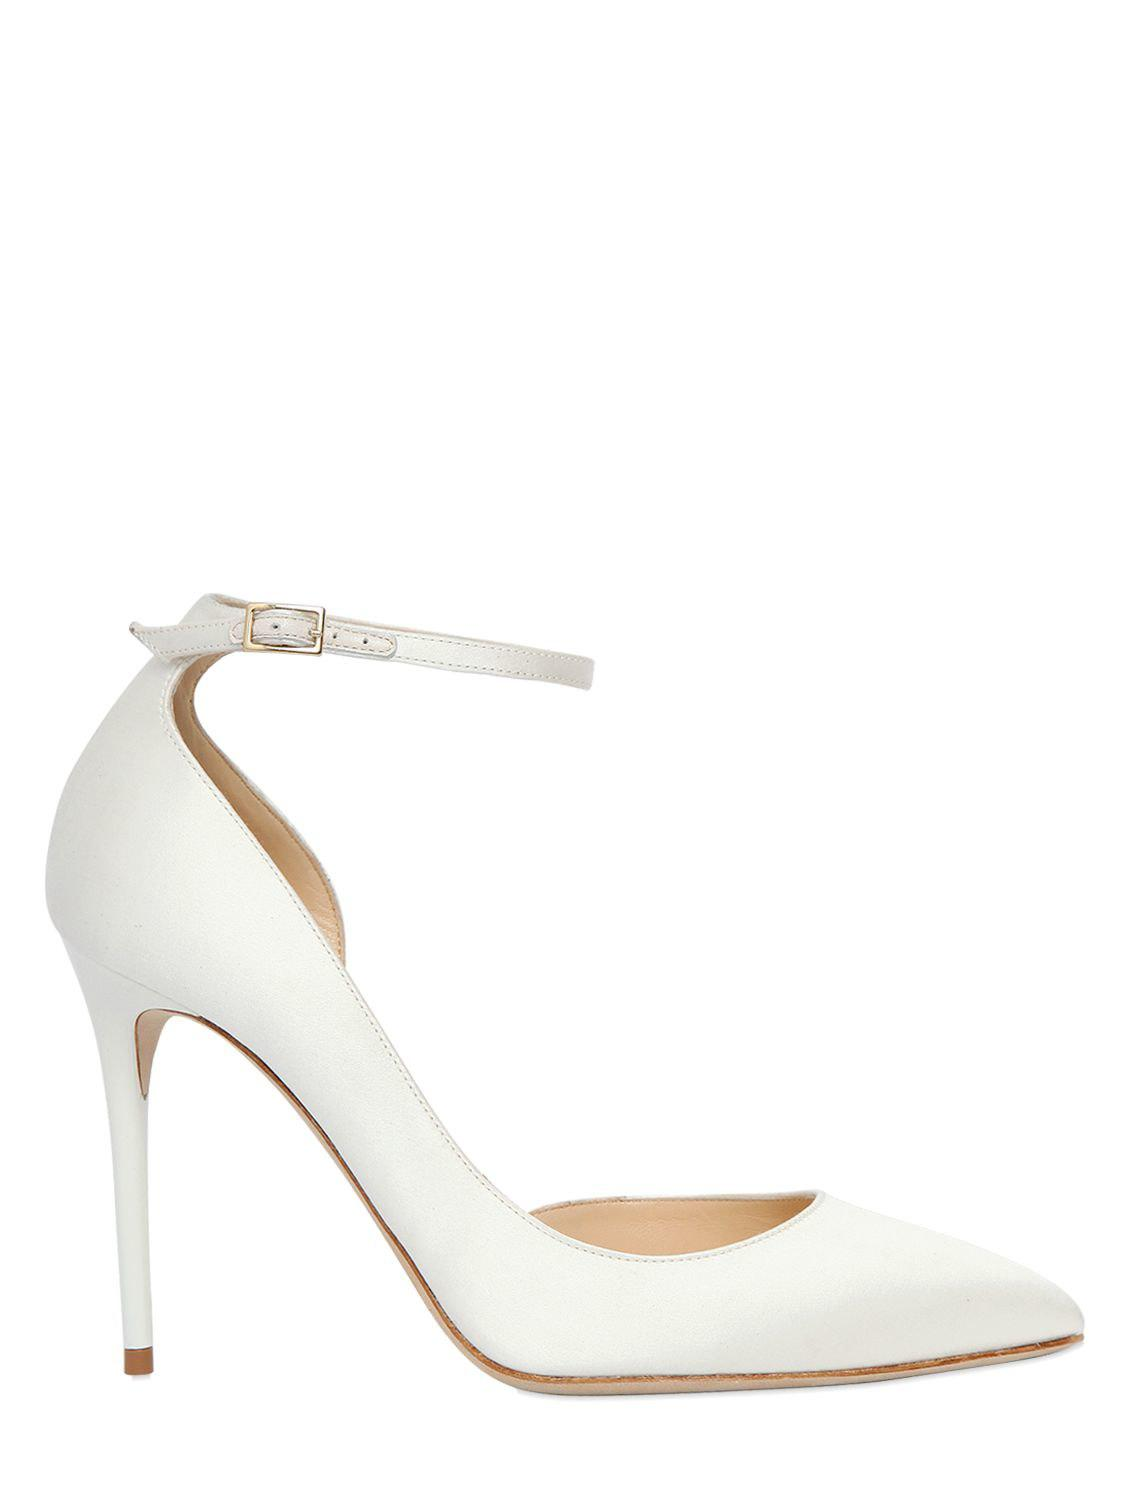 Jimmy choo 100MM ROMY SILK SATIN PUMPS Ebay Cheap Price Cheap For Nice Inexpensive Cheap Online Sale Comfortable AFVor2dBI